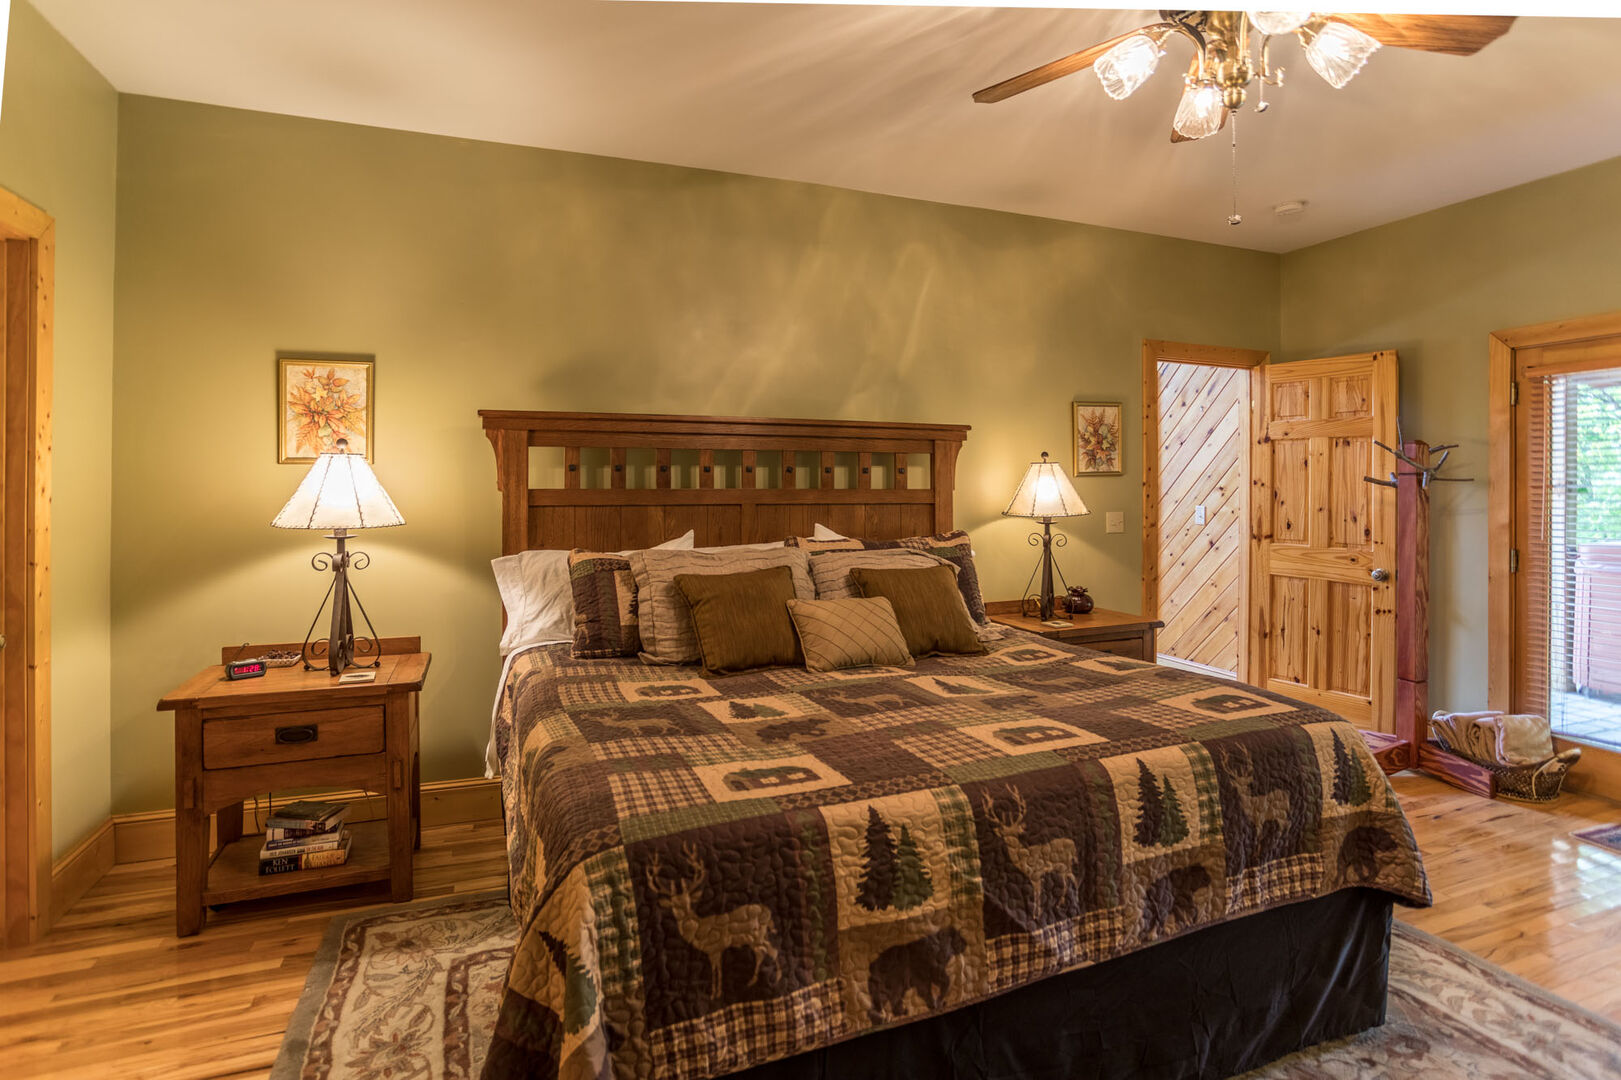 Master bedroom has king size bed